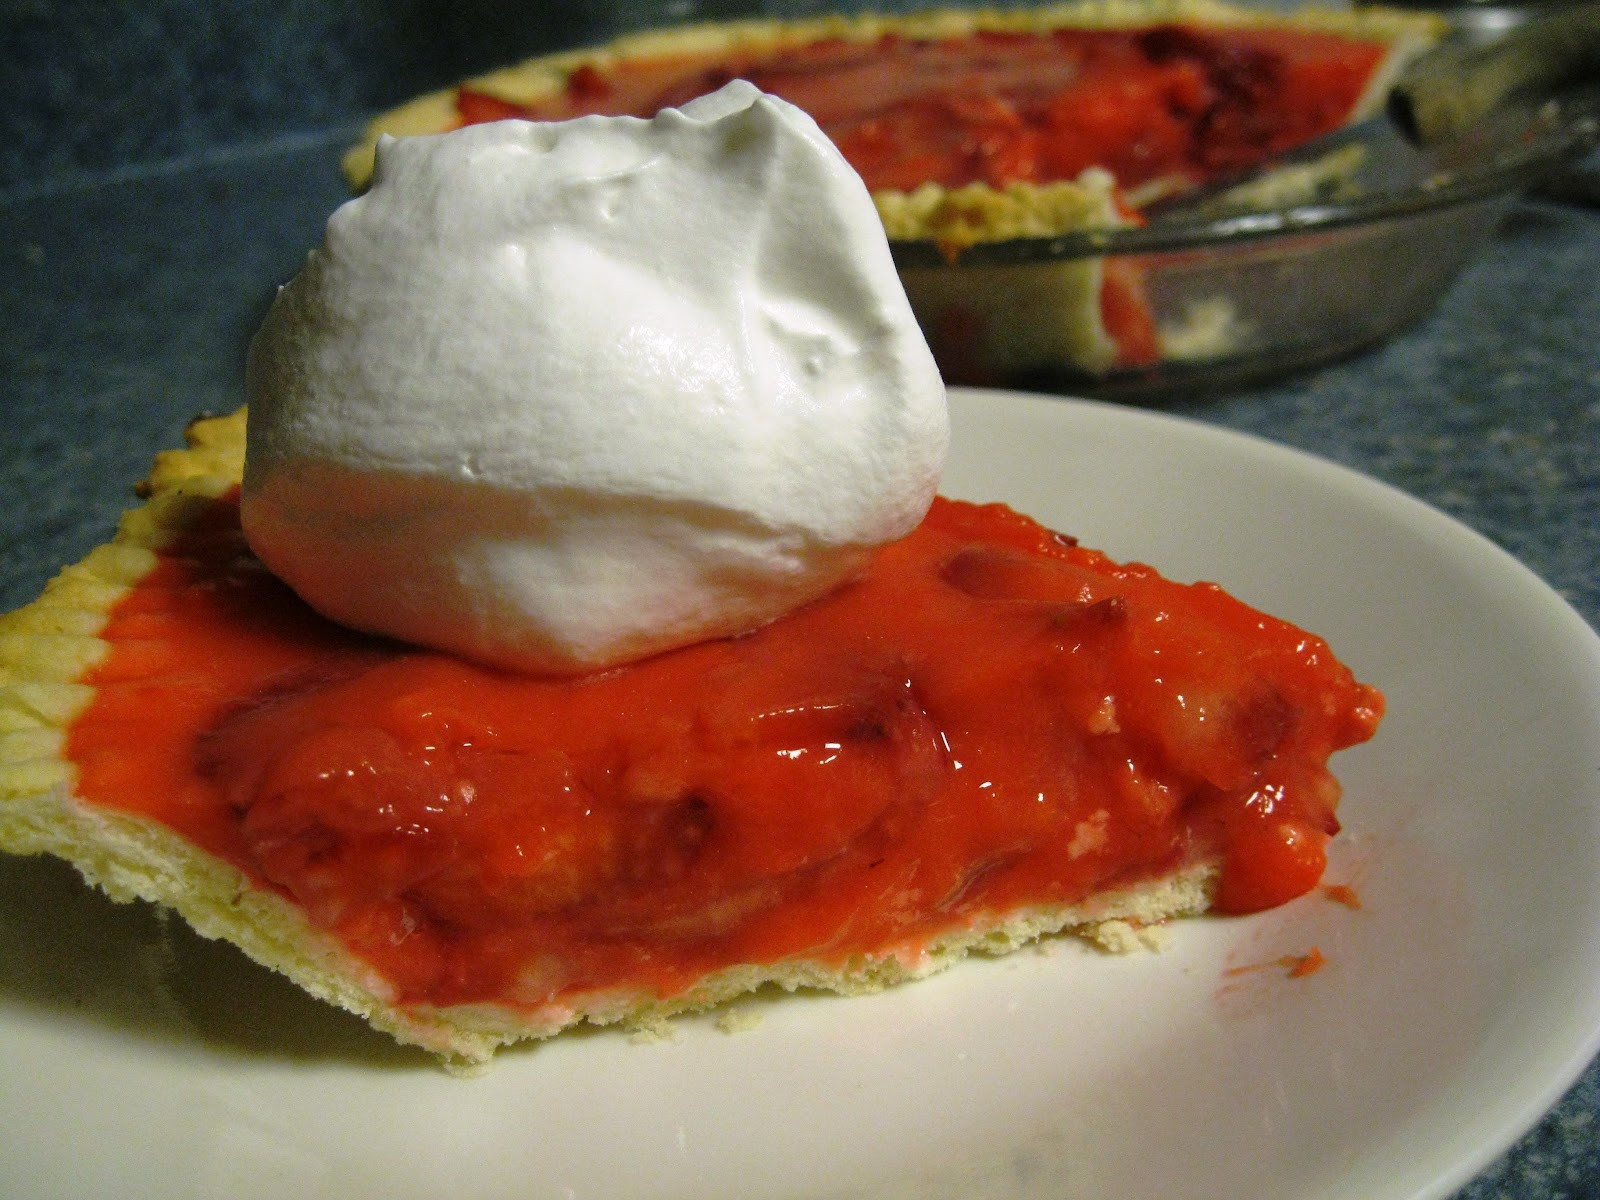 Diabetic Strawberry Desserts  The Frugal Pantry Sugar Free Strawberry Pie